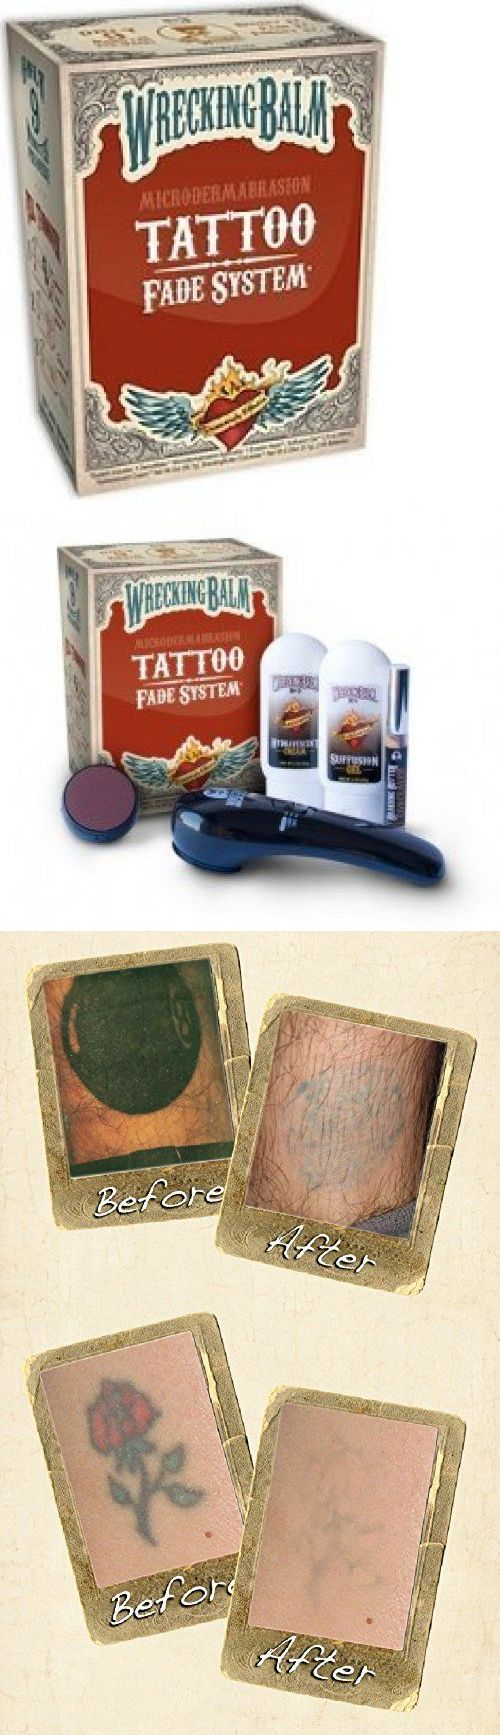 Tattoo Removal Machines: Wrecking Balm Tattoo Fade System BUY IT NOW ONLY: $35.71